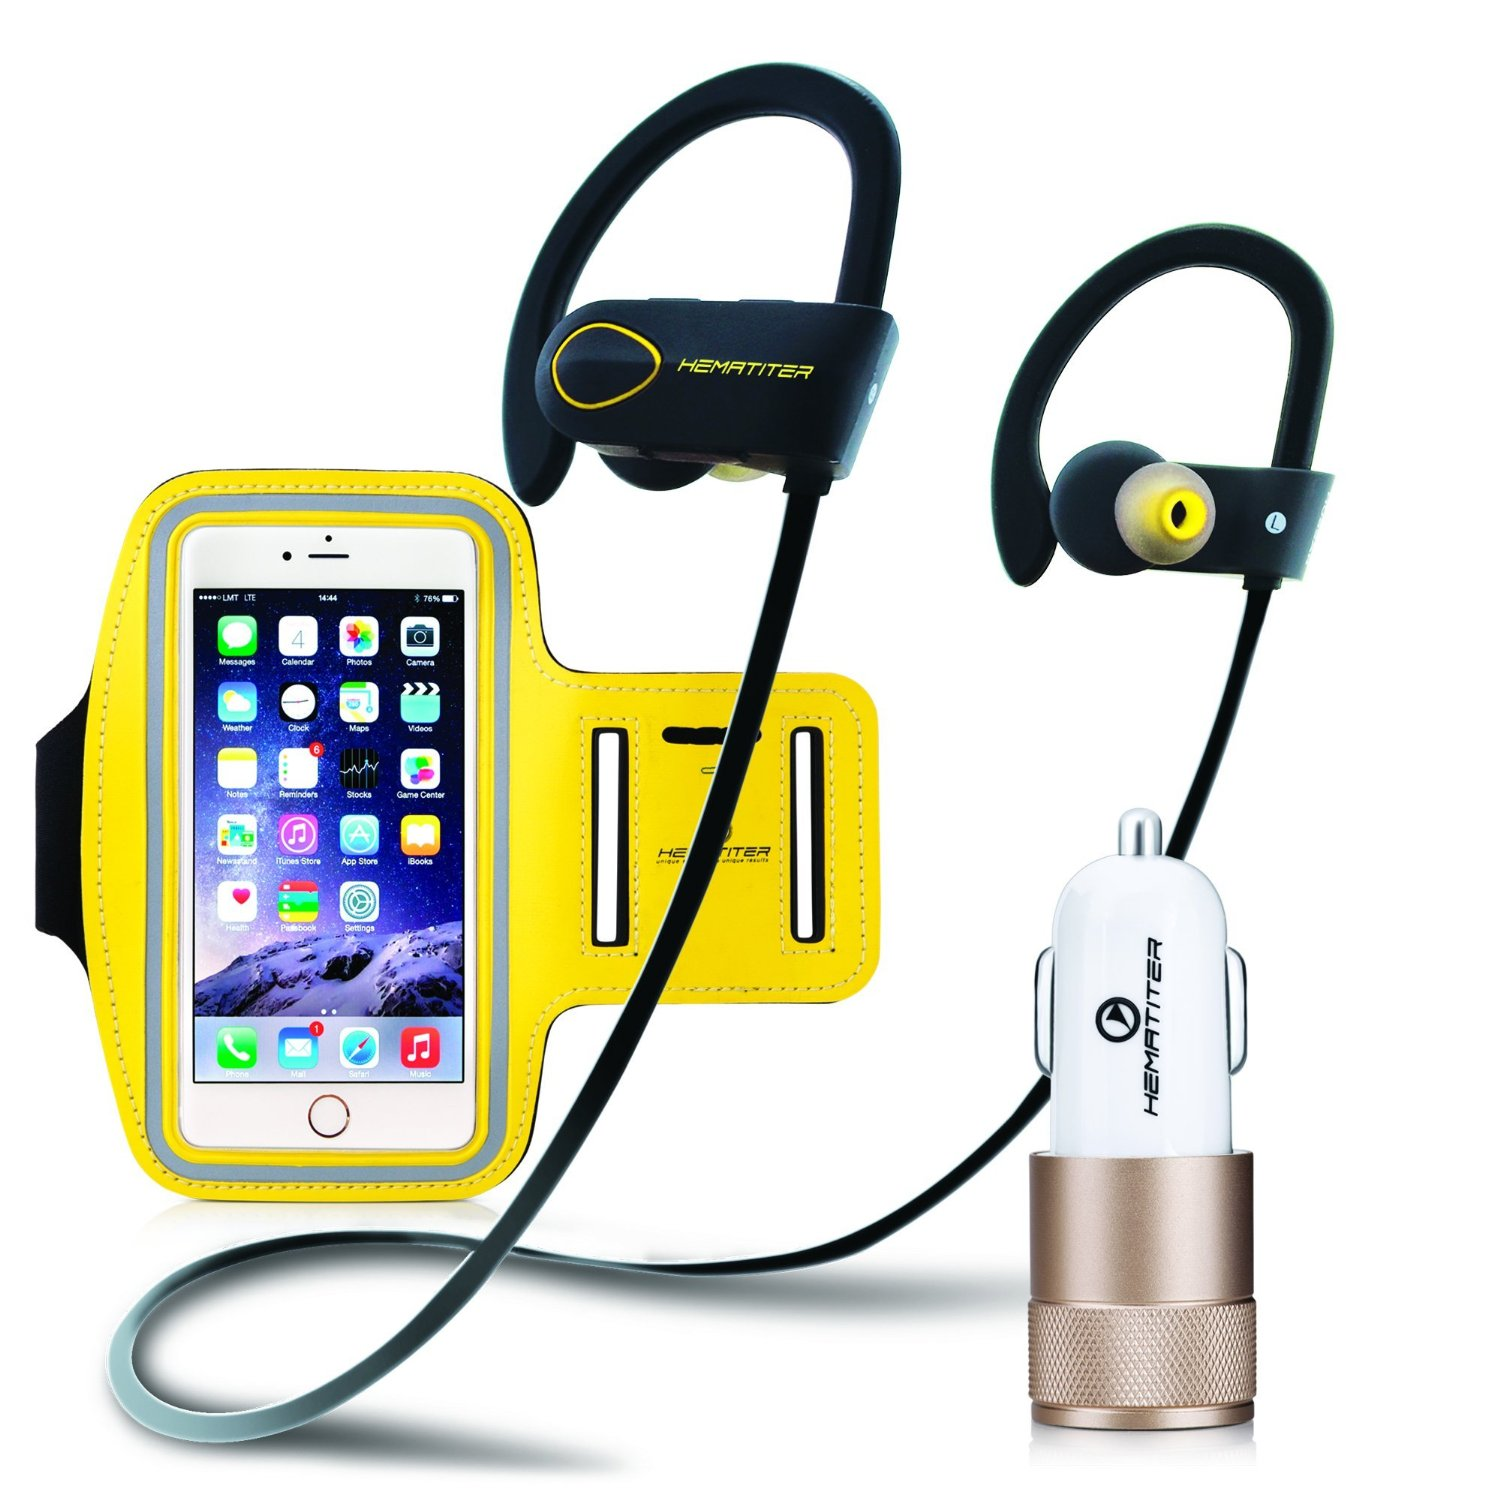 vivitar waterproof bluetooth headphones manual